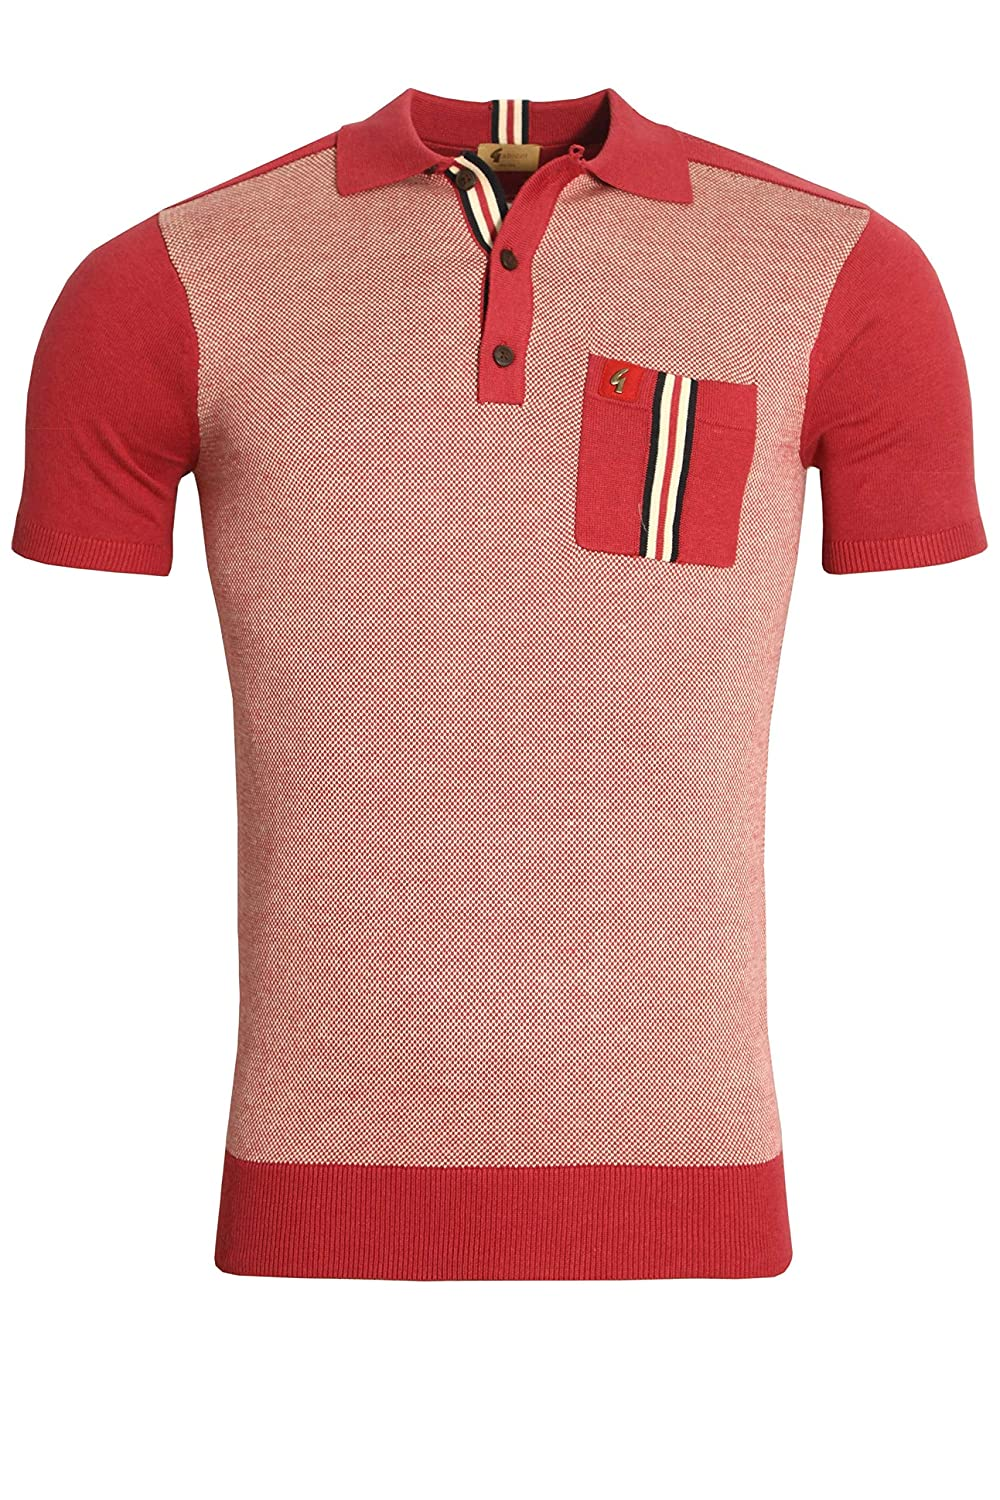 Gabicci Belair Jacquard Pocket Polo Shirt | Grenadine X-Large ...